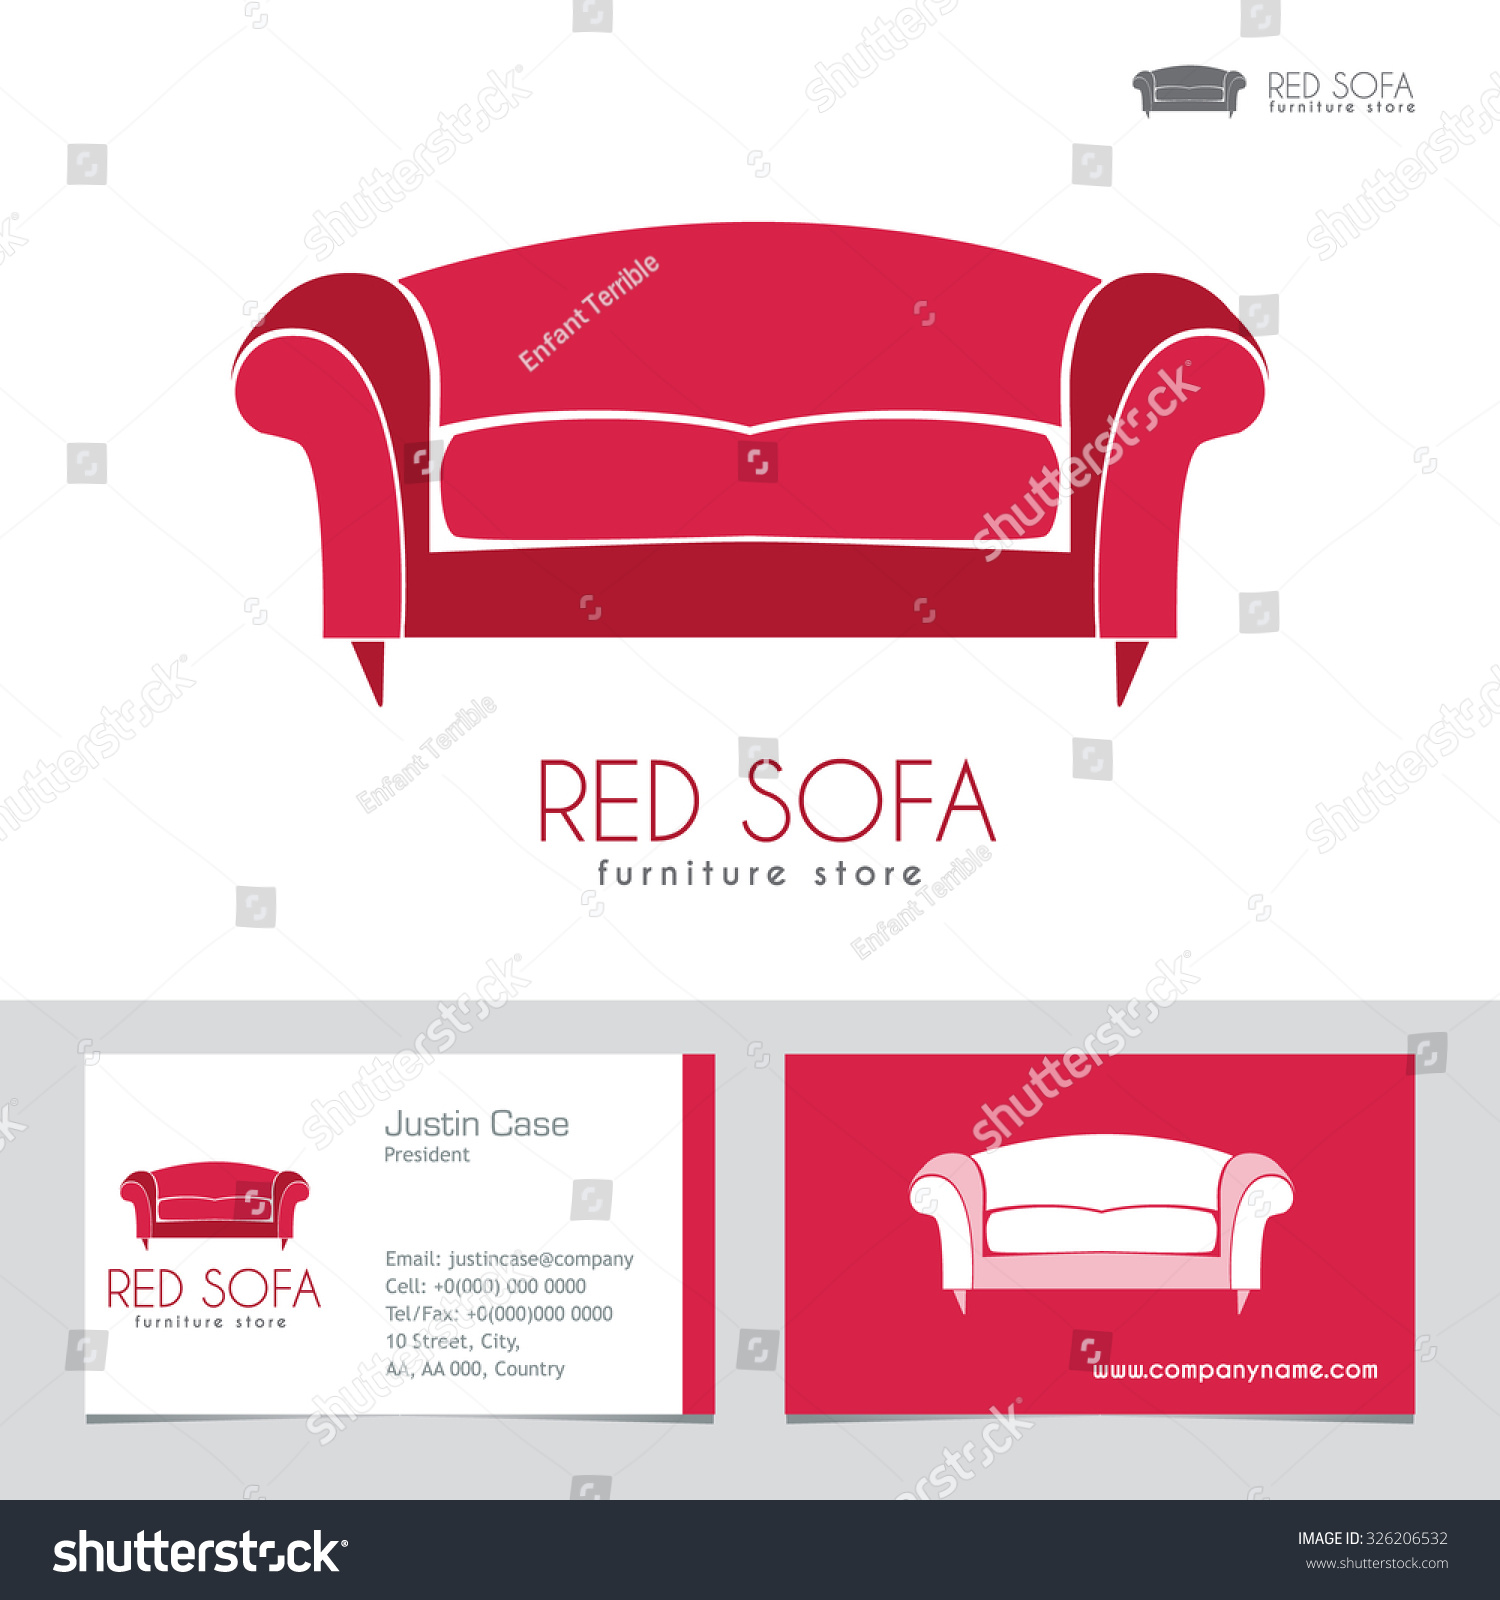 Royalty free sofa business sign business card 326206532 stock sofa business sign business card vector template for furniture store home decor boutique magicingreecefo Choice Image